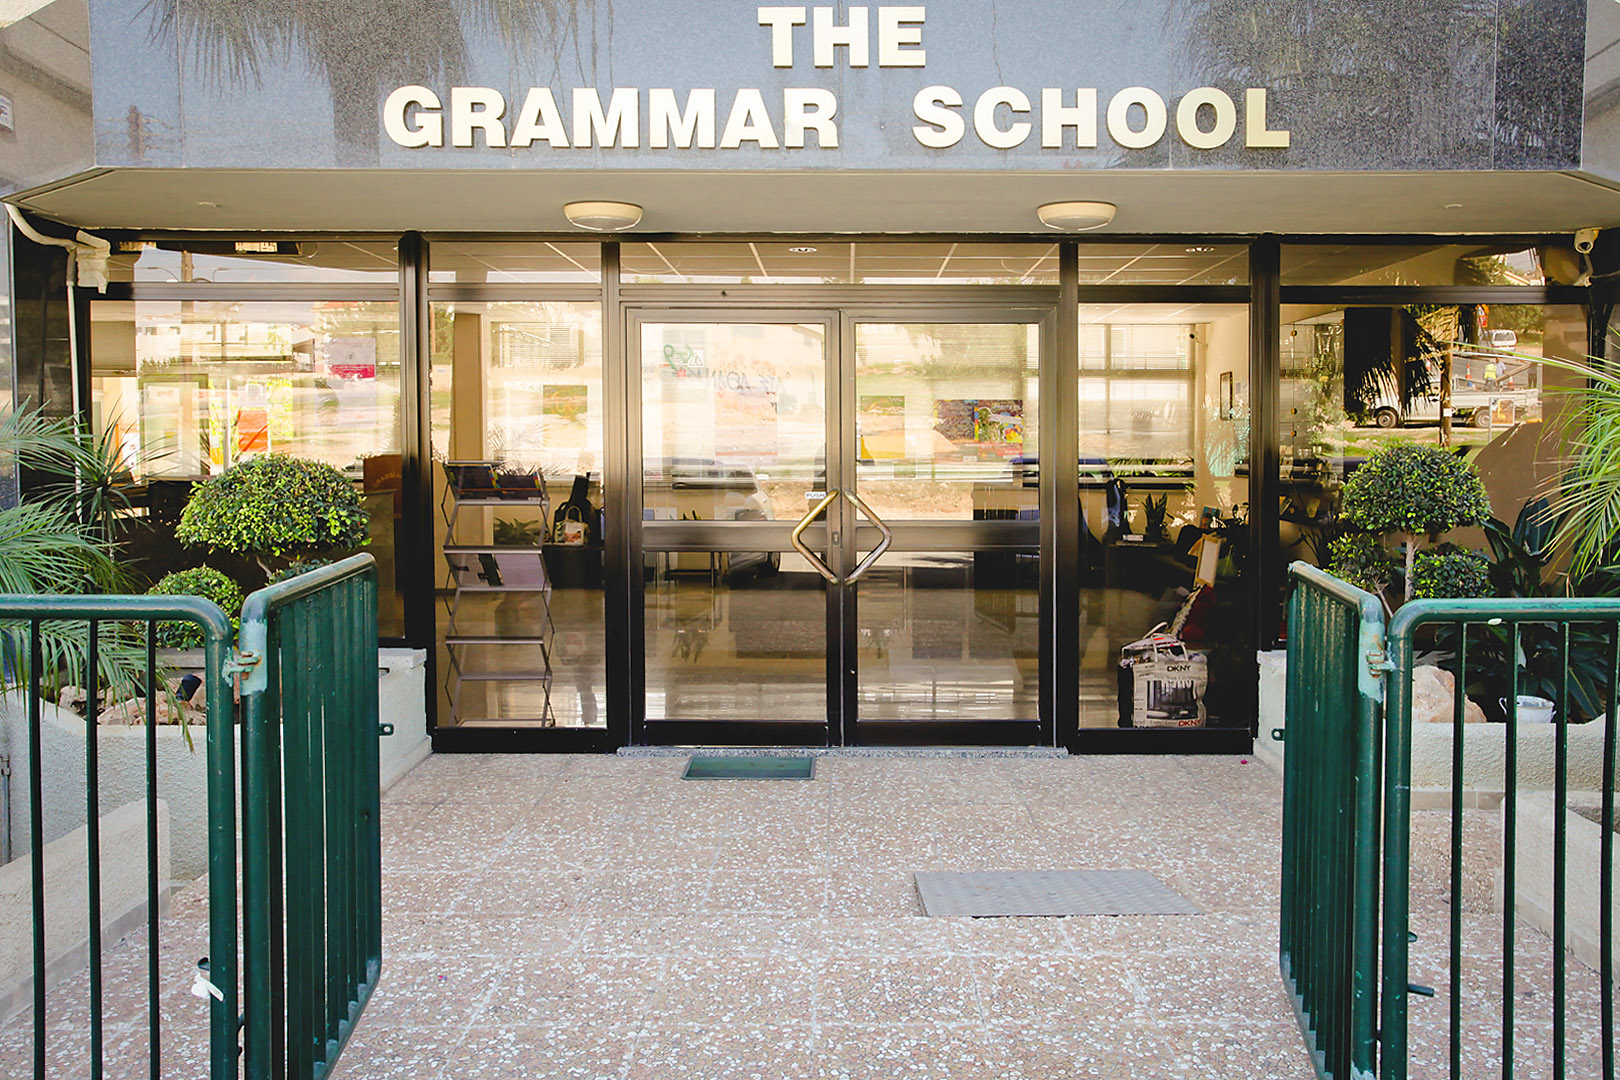 """college grammar Grammar handbook personal pronoun, it has now become an acceptable and gender-neutral way to refer to someone: """"a baseball pitcher must work constantly on their pitch."""